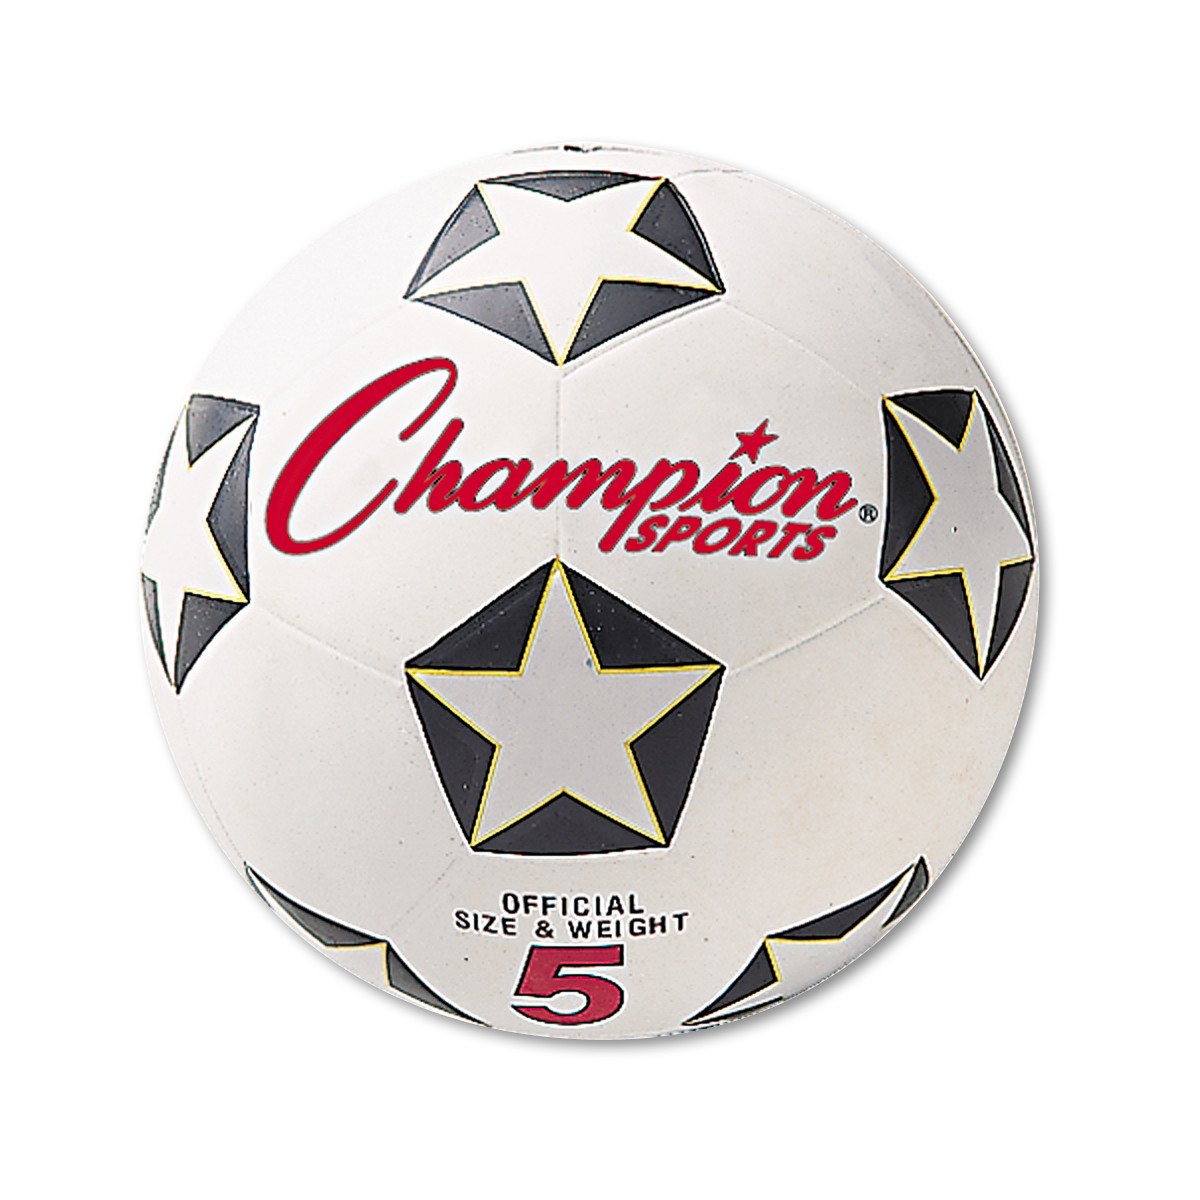 Champion Sports Rubber Sports Ball, For Soccer, No. 5, White Black by CHAMPION SPORT